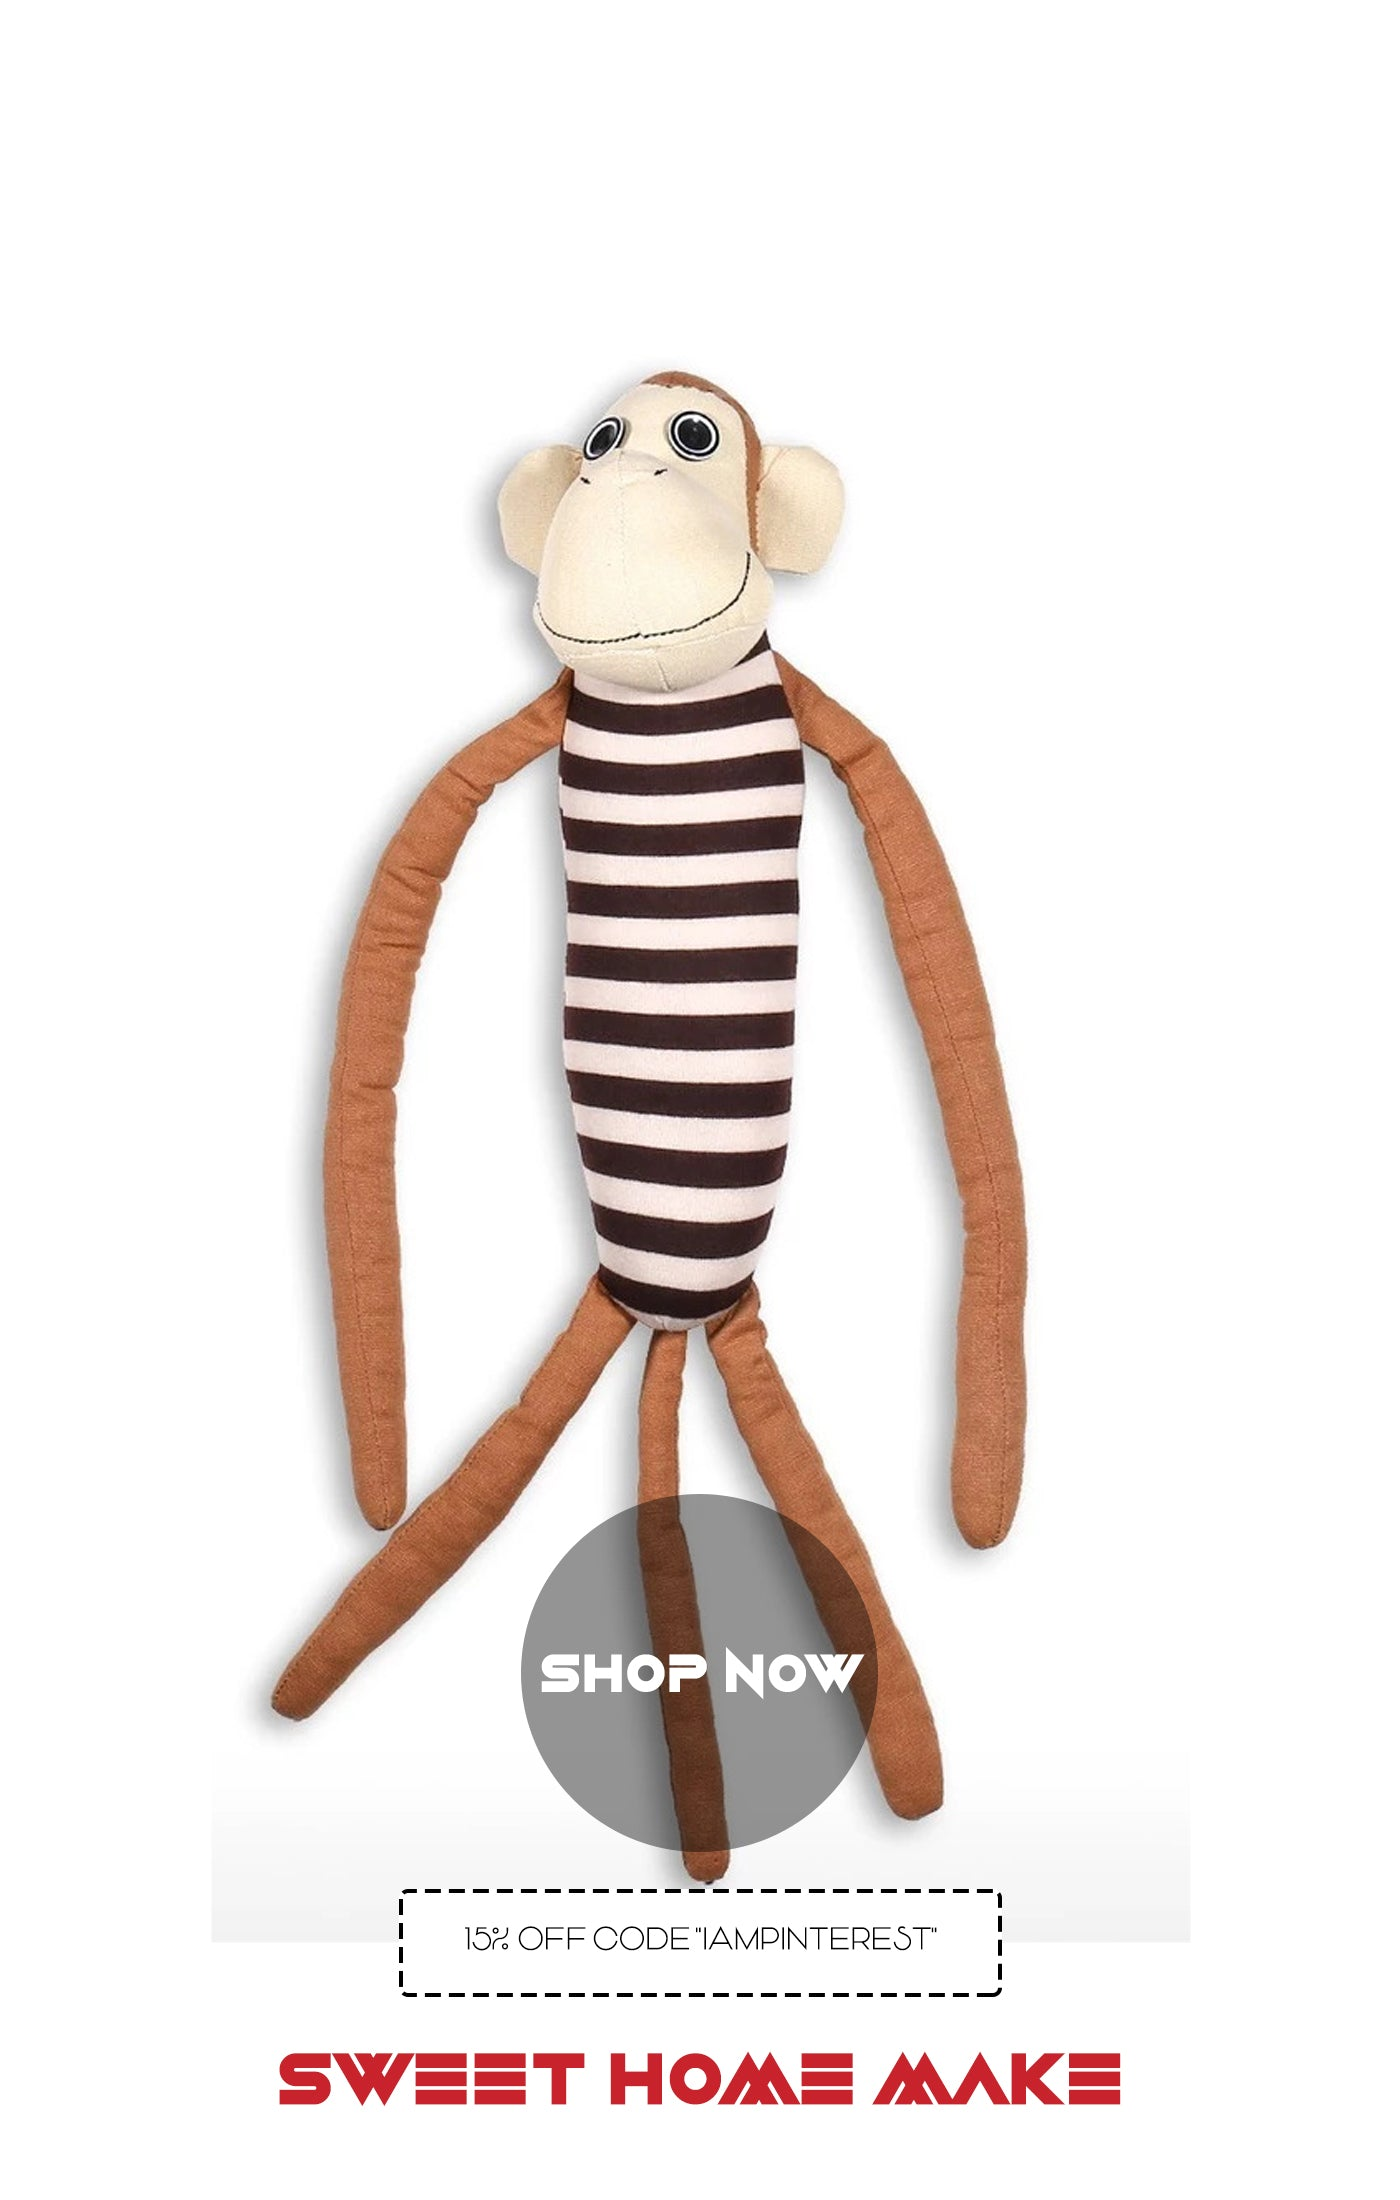 Monkey Toys For Nursery and Kids as Online Store